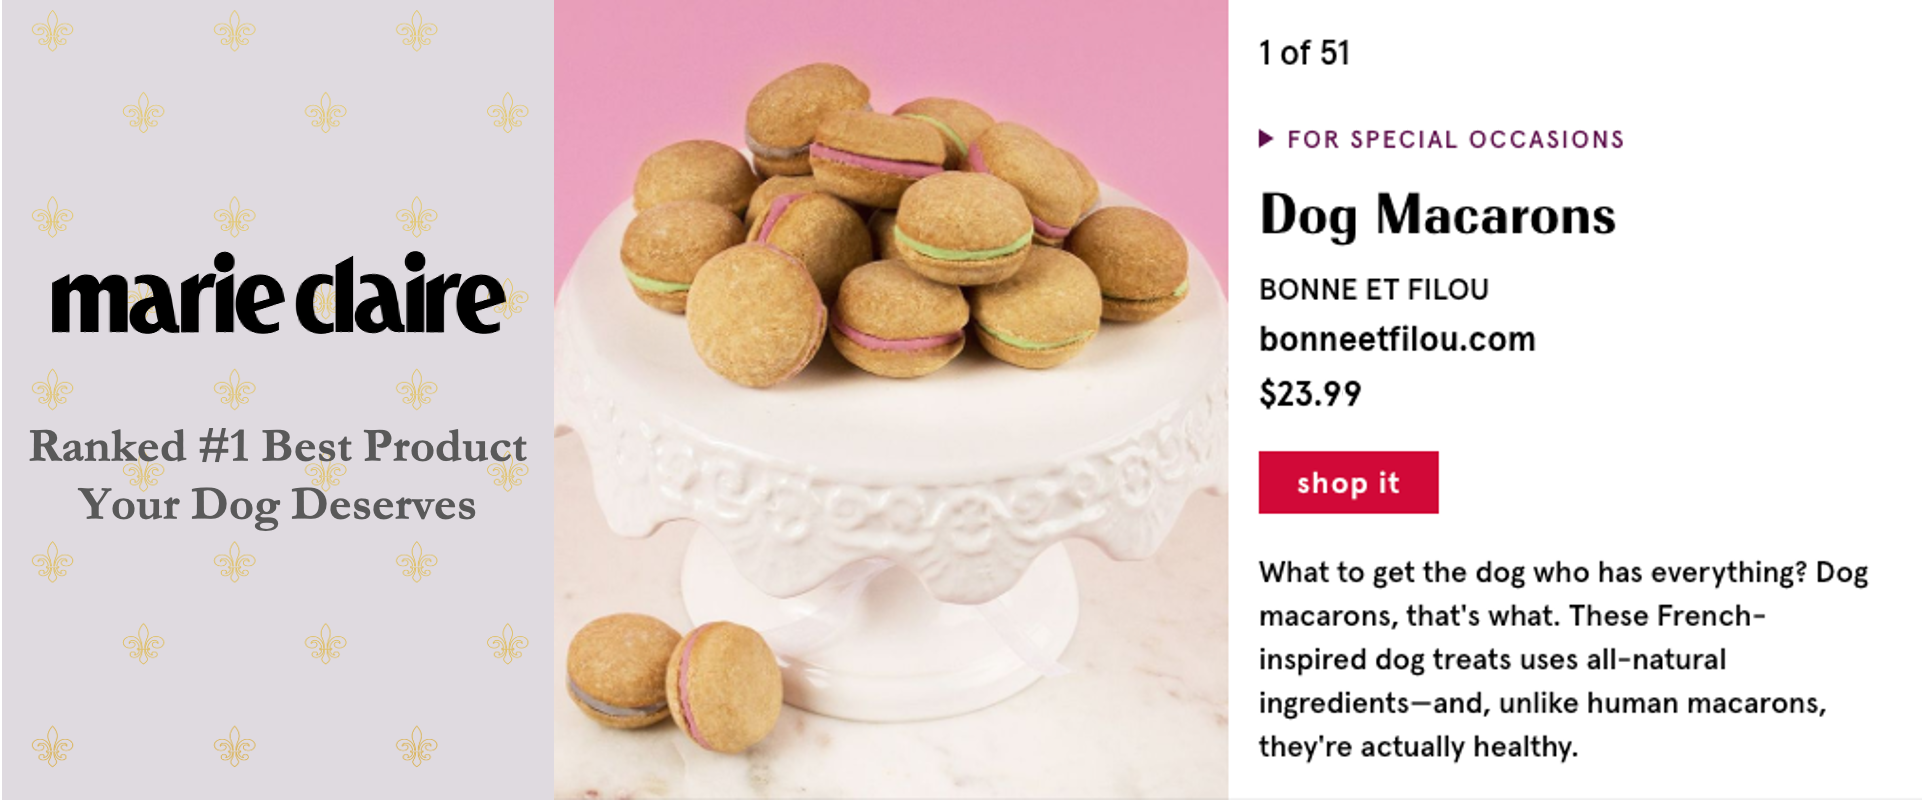 Marie Claire Best Dog Product Macarons Dog Pet Gift Gifts Bonne et Filou Healthy Treats